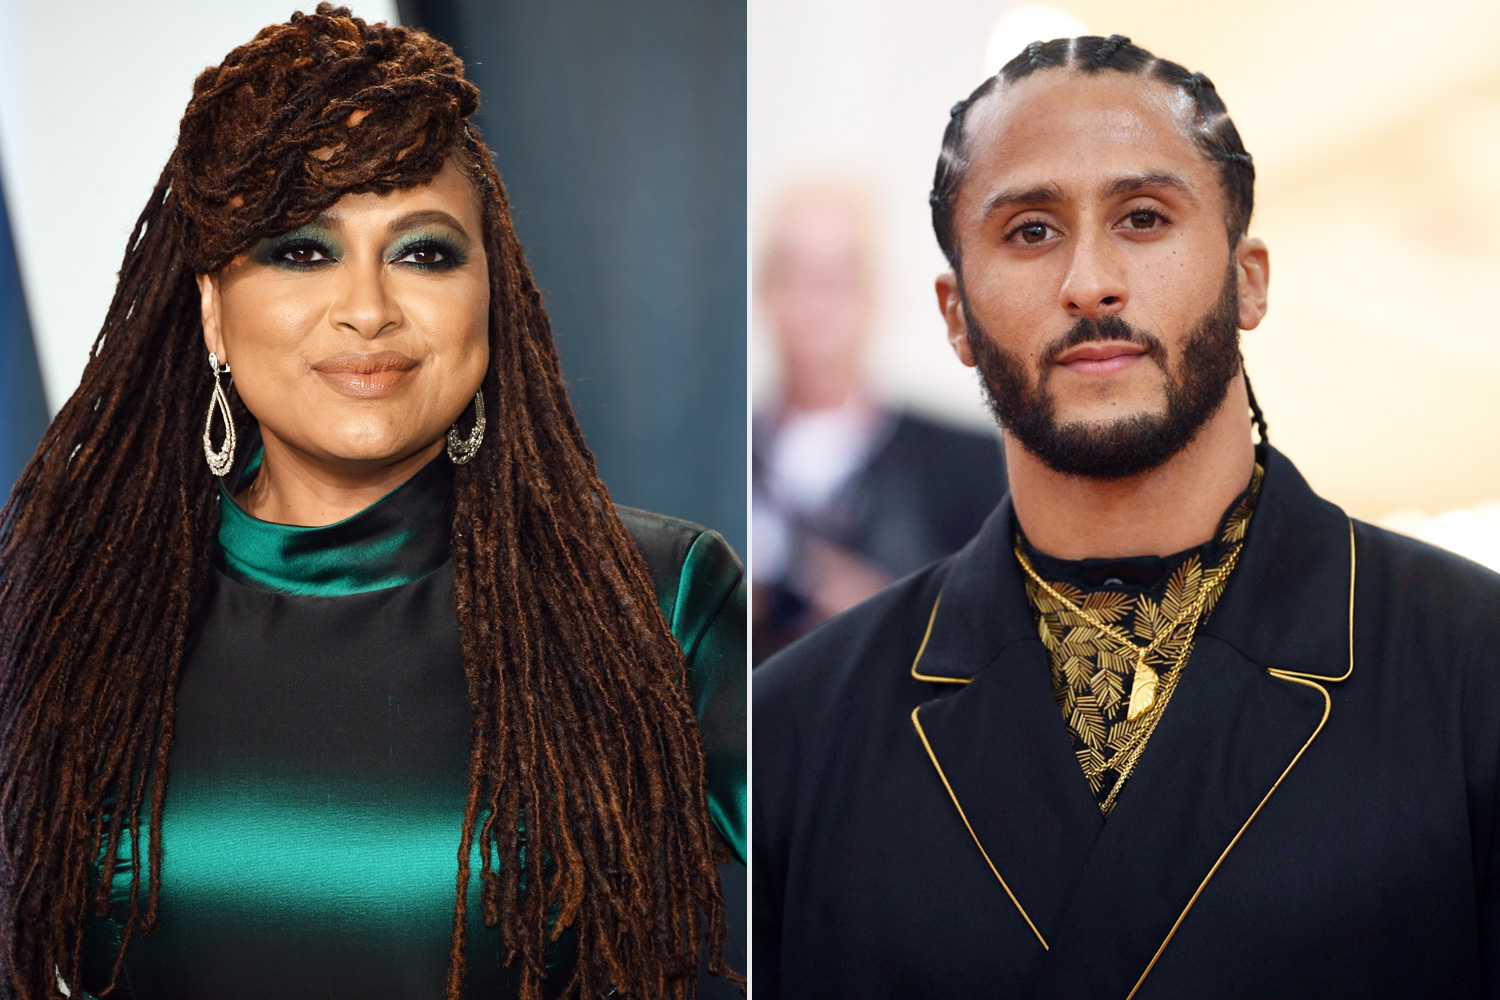 Netflix Announces New Ava DuVernay Series Bashed on Colin Kaepernick's High School Years